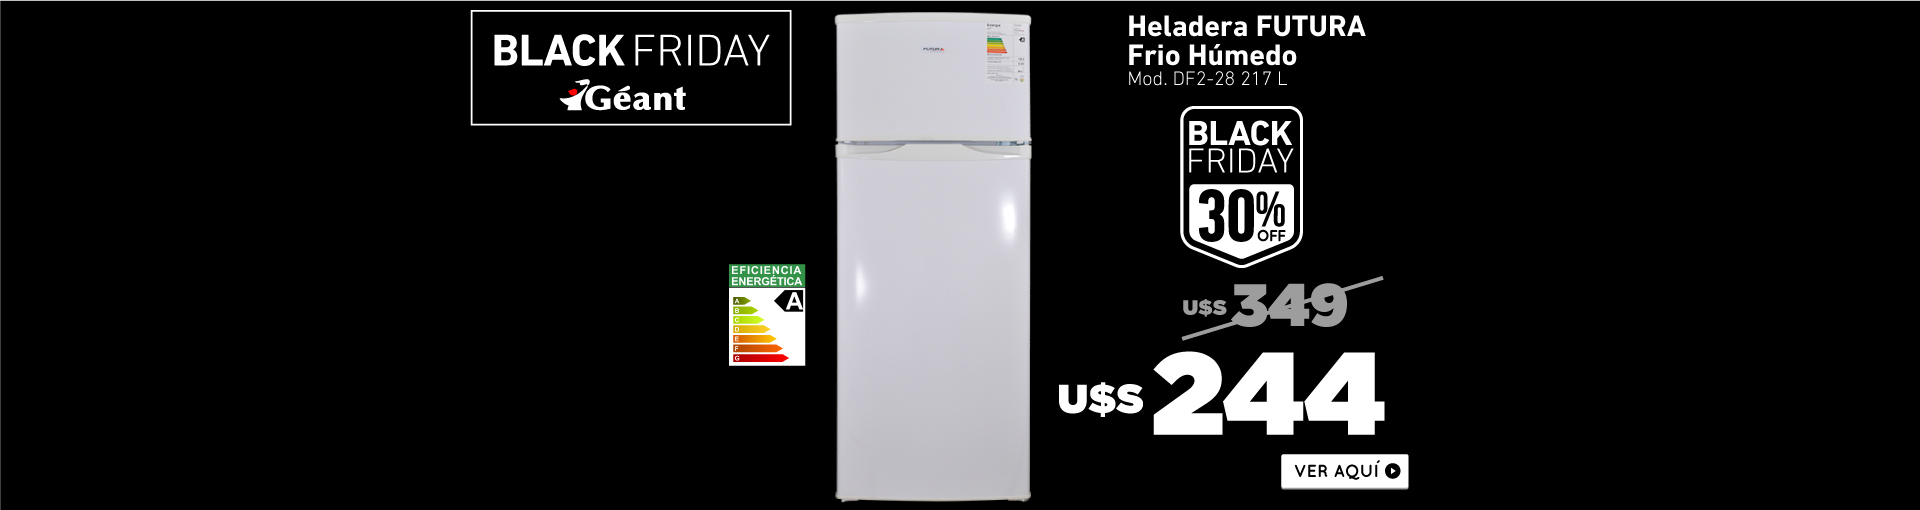 h-03-375500-heladera-futura-BLACKFRIDAY